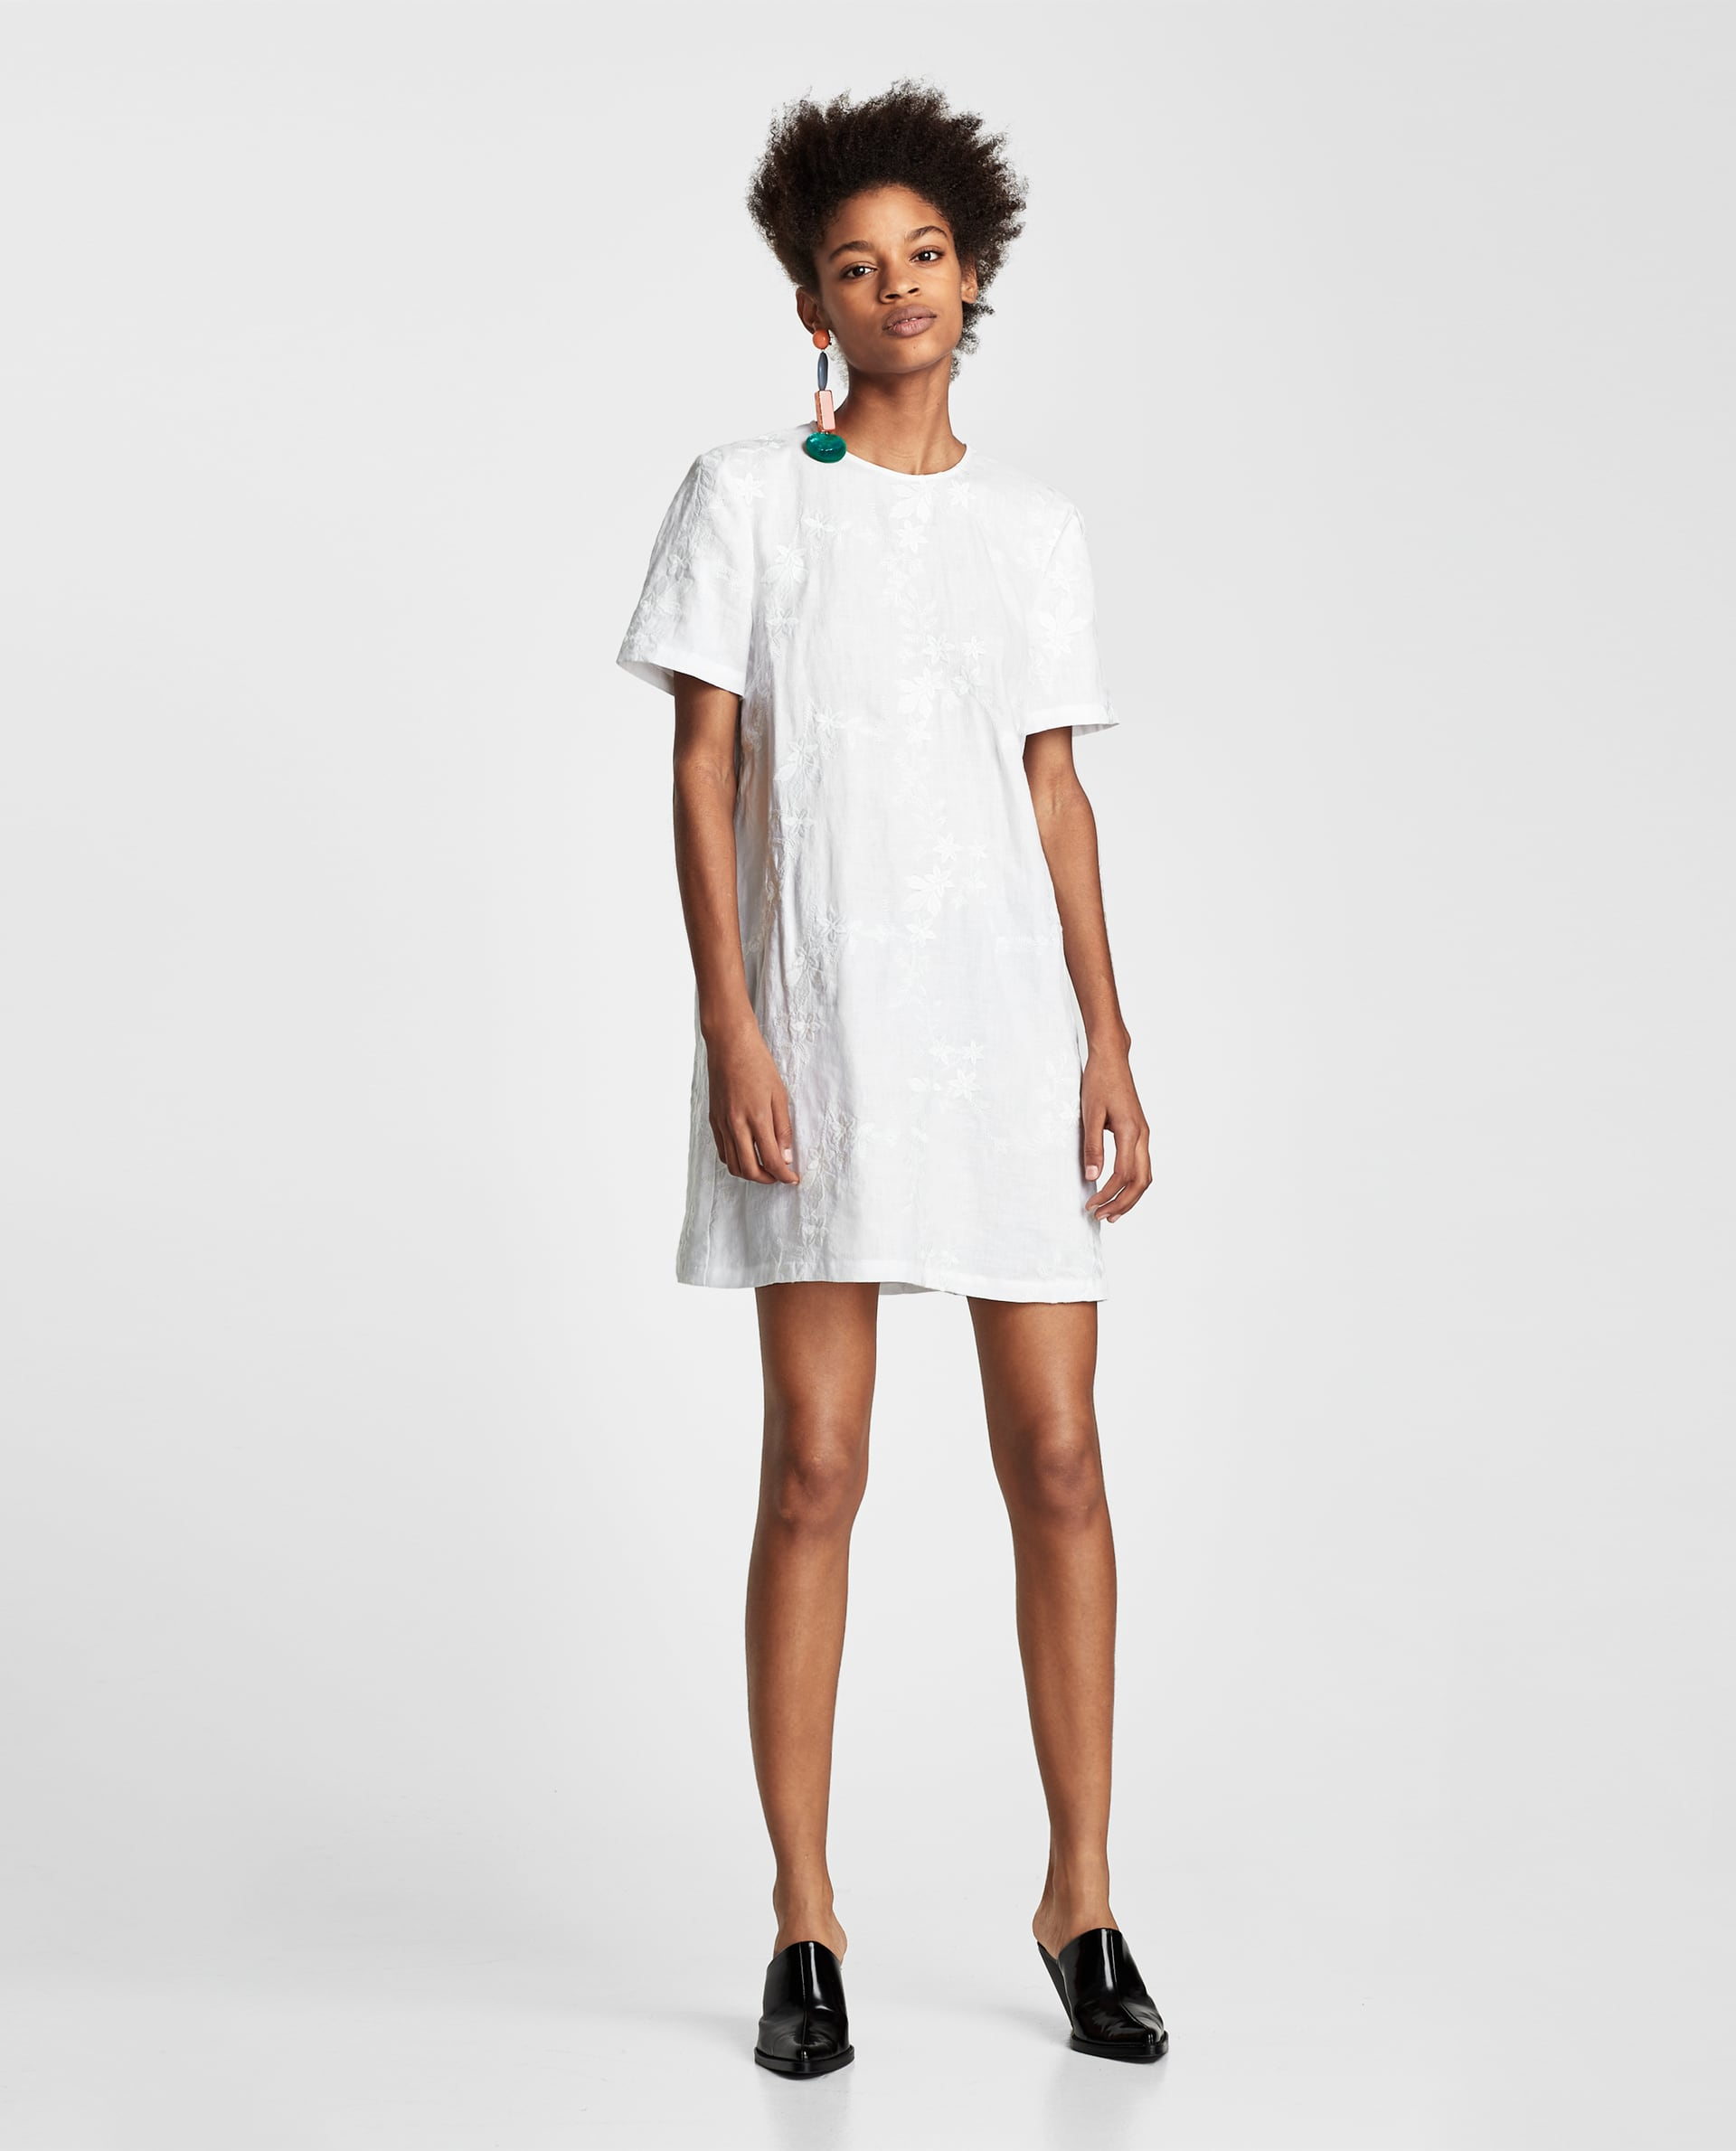 6e61e937d11 White Dresses to Kickstart Your Spring Wardrobe - FabFitFun